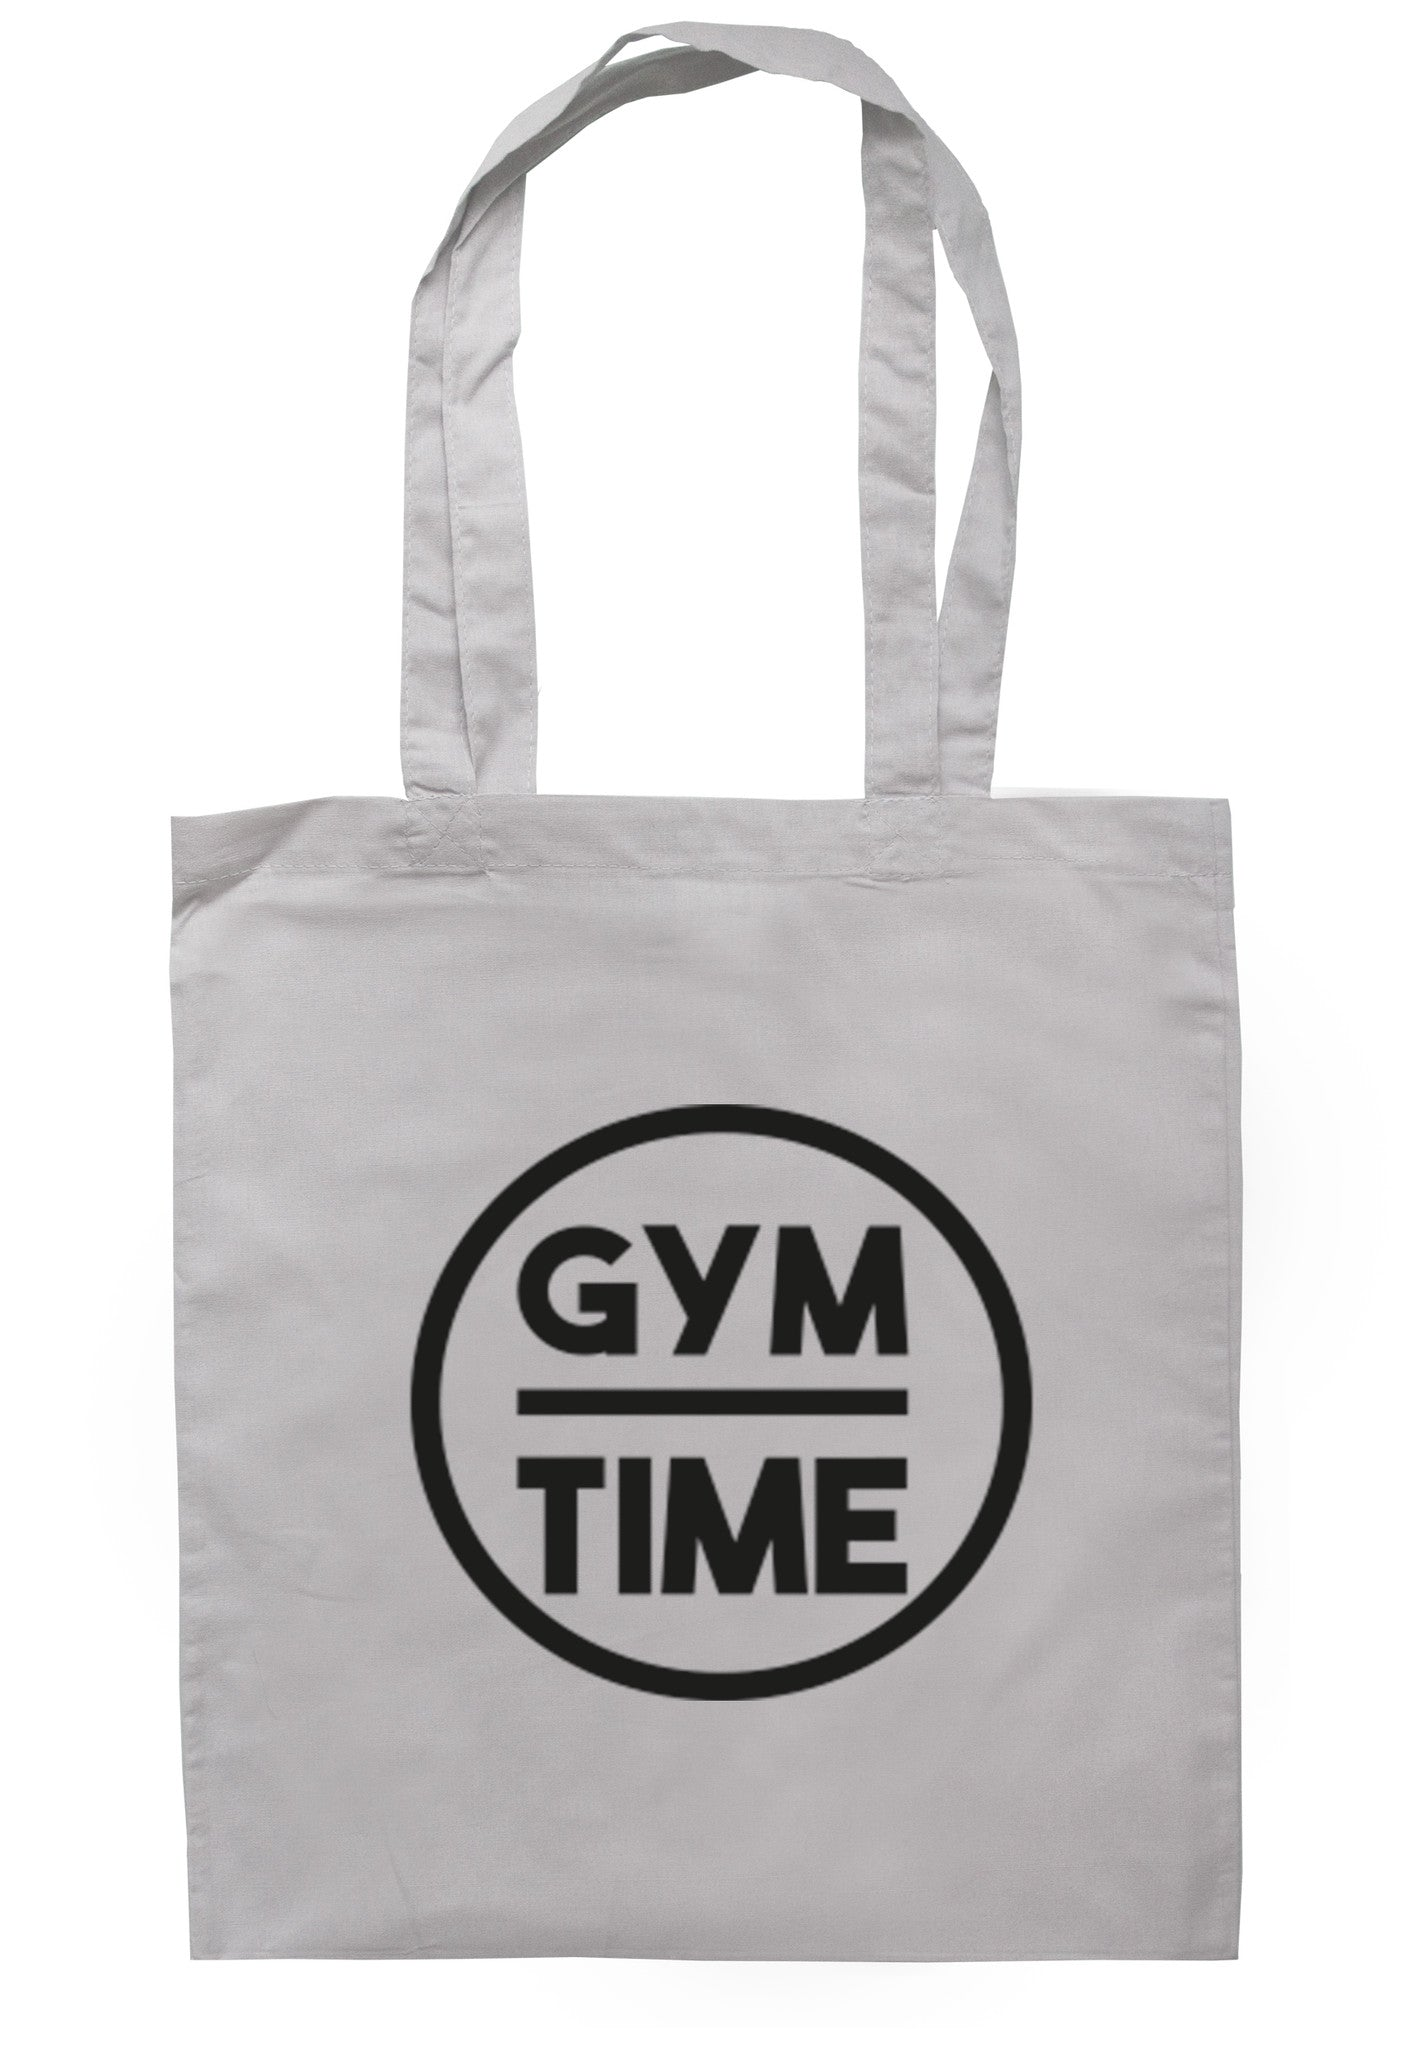 Gym Time Tote Bag TB0095 - Illustrated Identity Ltd.